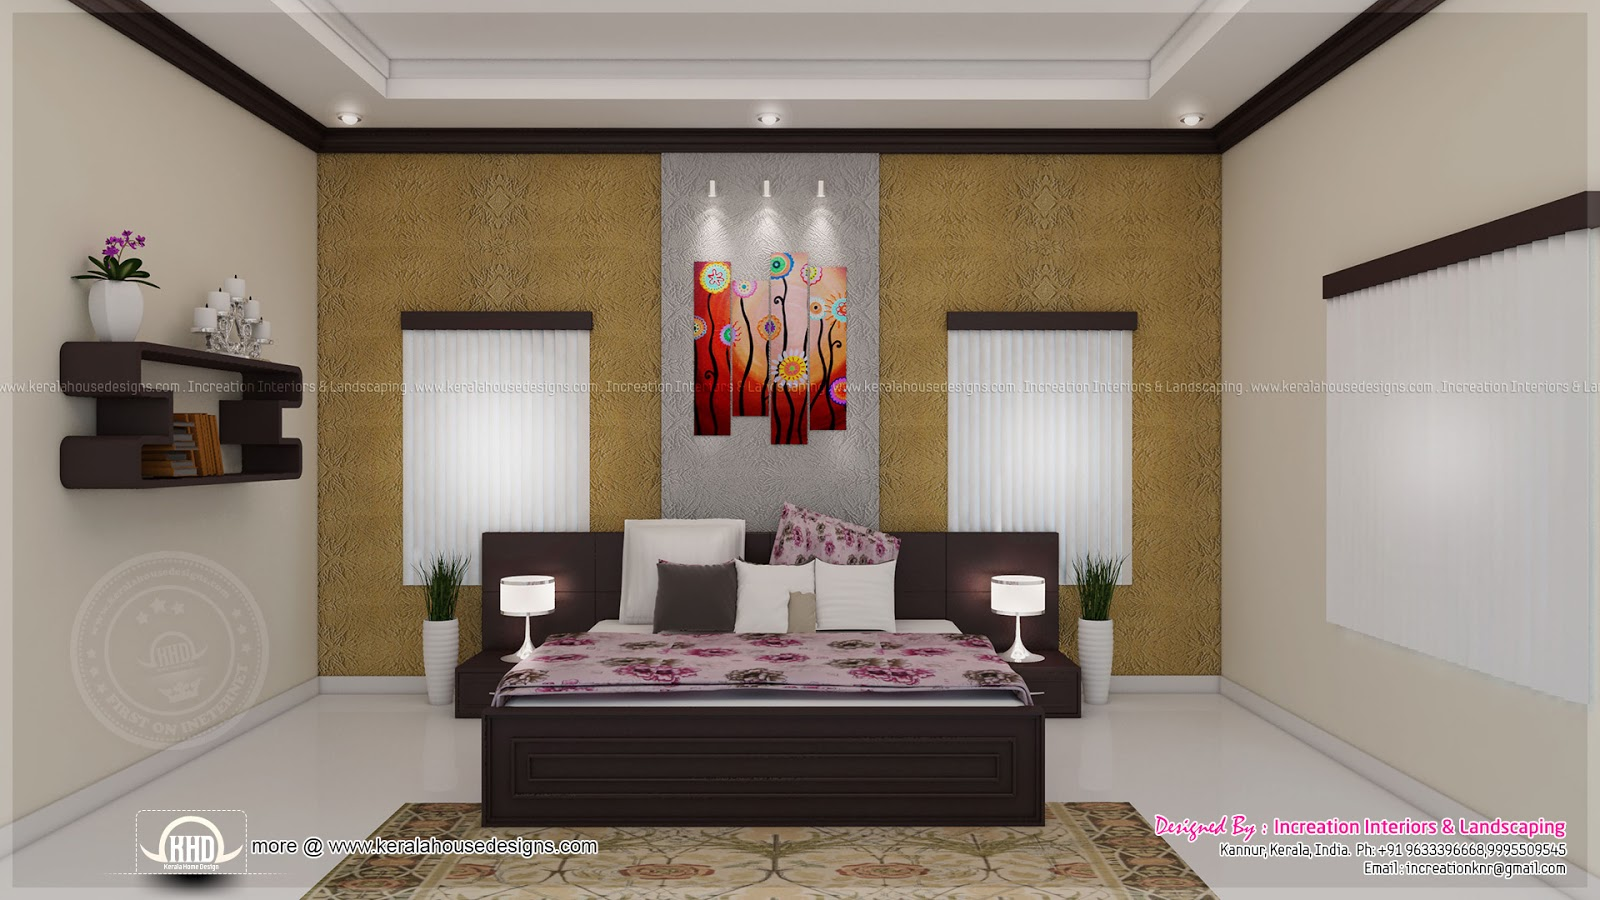 House interior ideas in 3d rendering kerala home design for Interior home design bedroom ideas